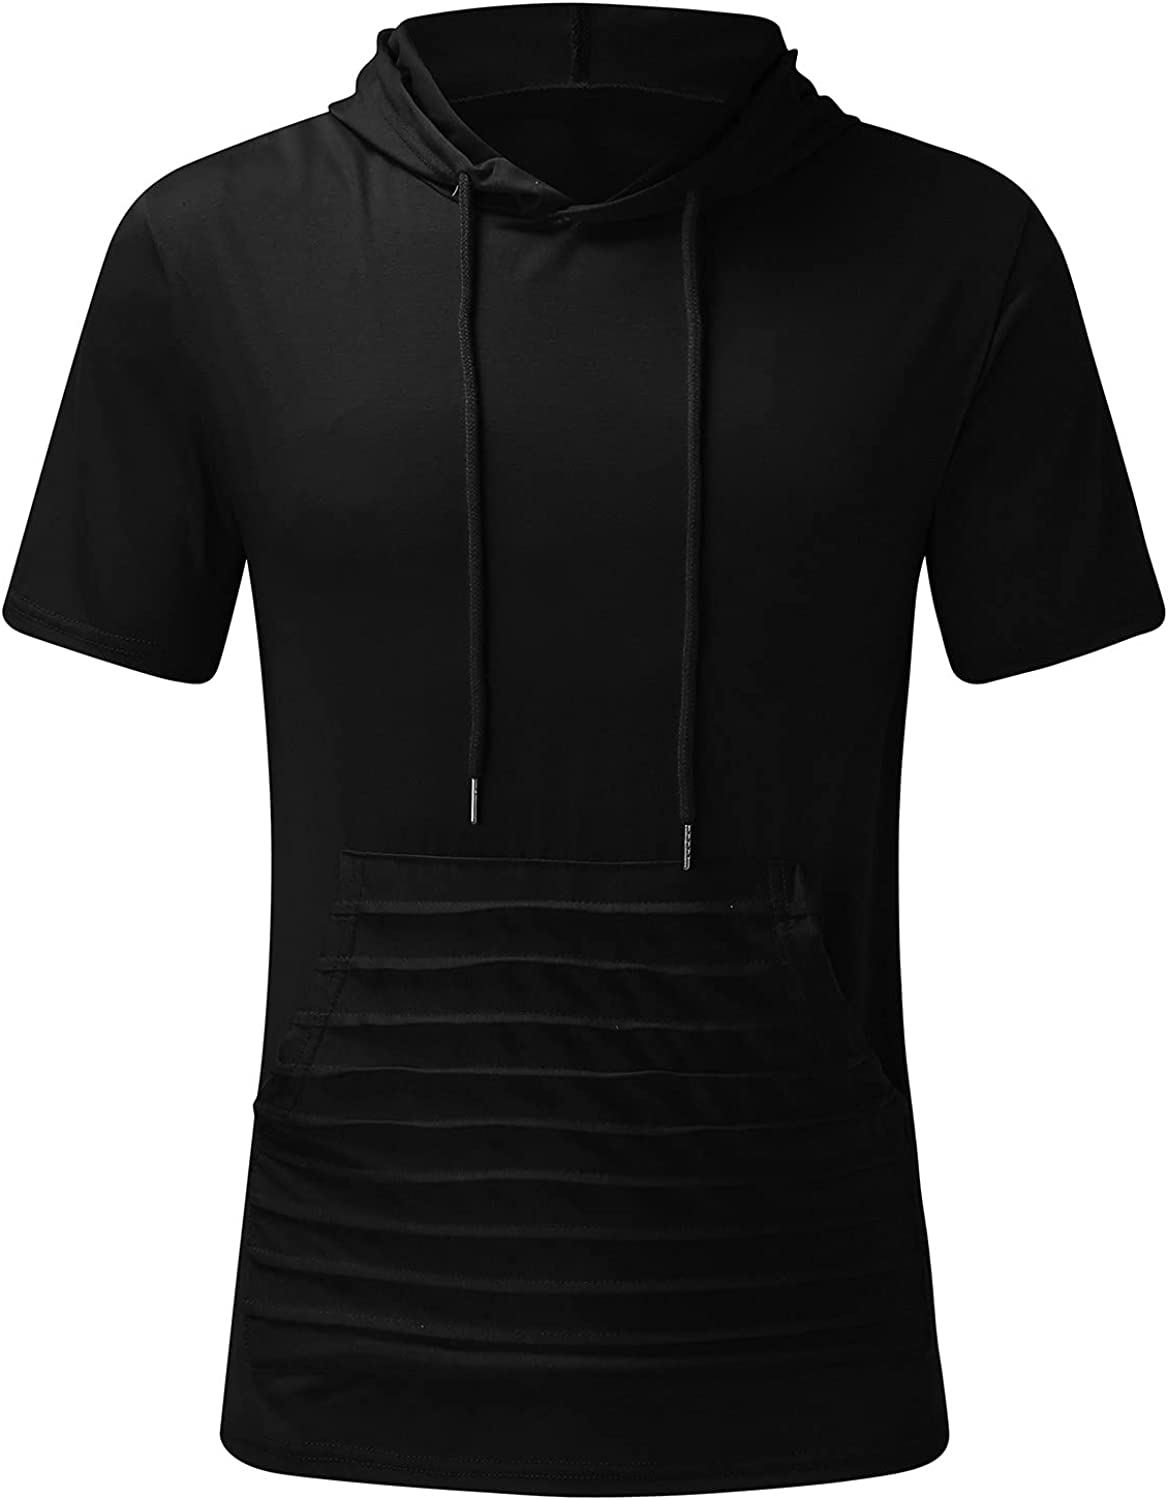 FUNEY Mens Fashion Athletic Hoodies Sport Sweatshirt T-Shirts Short Sleeve Solid Color Hip Hop Pullover Tops Summer Blouse